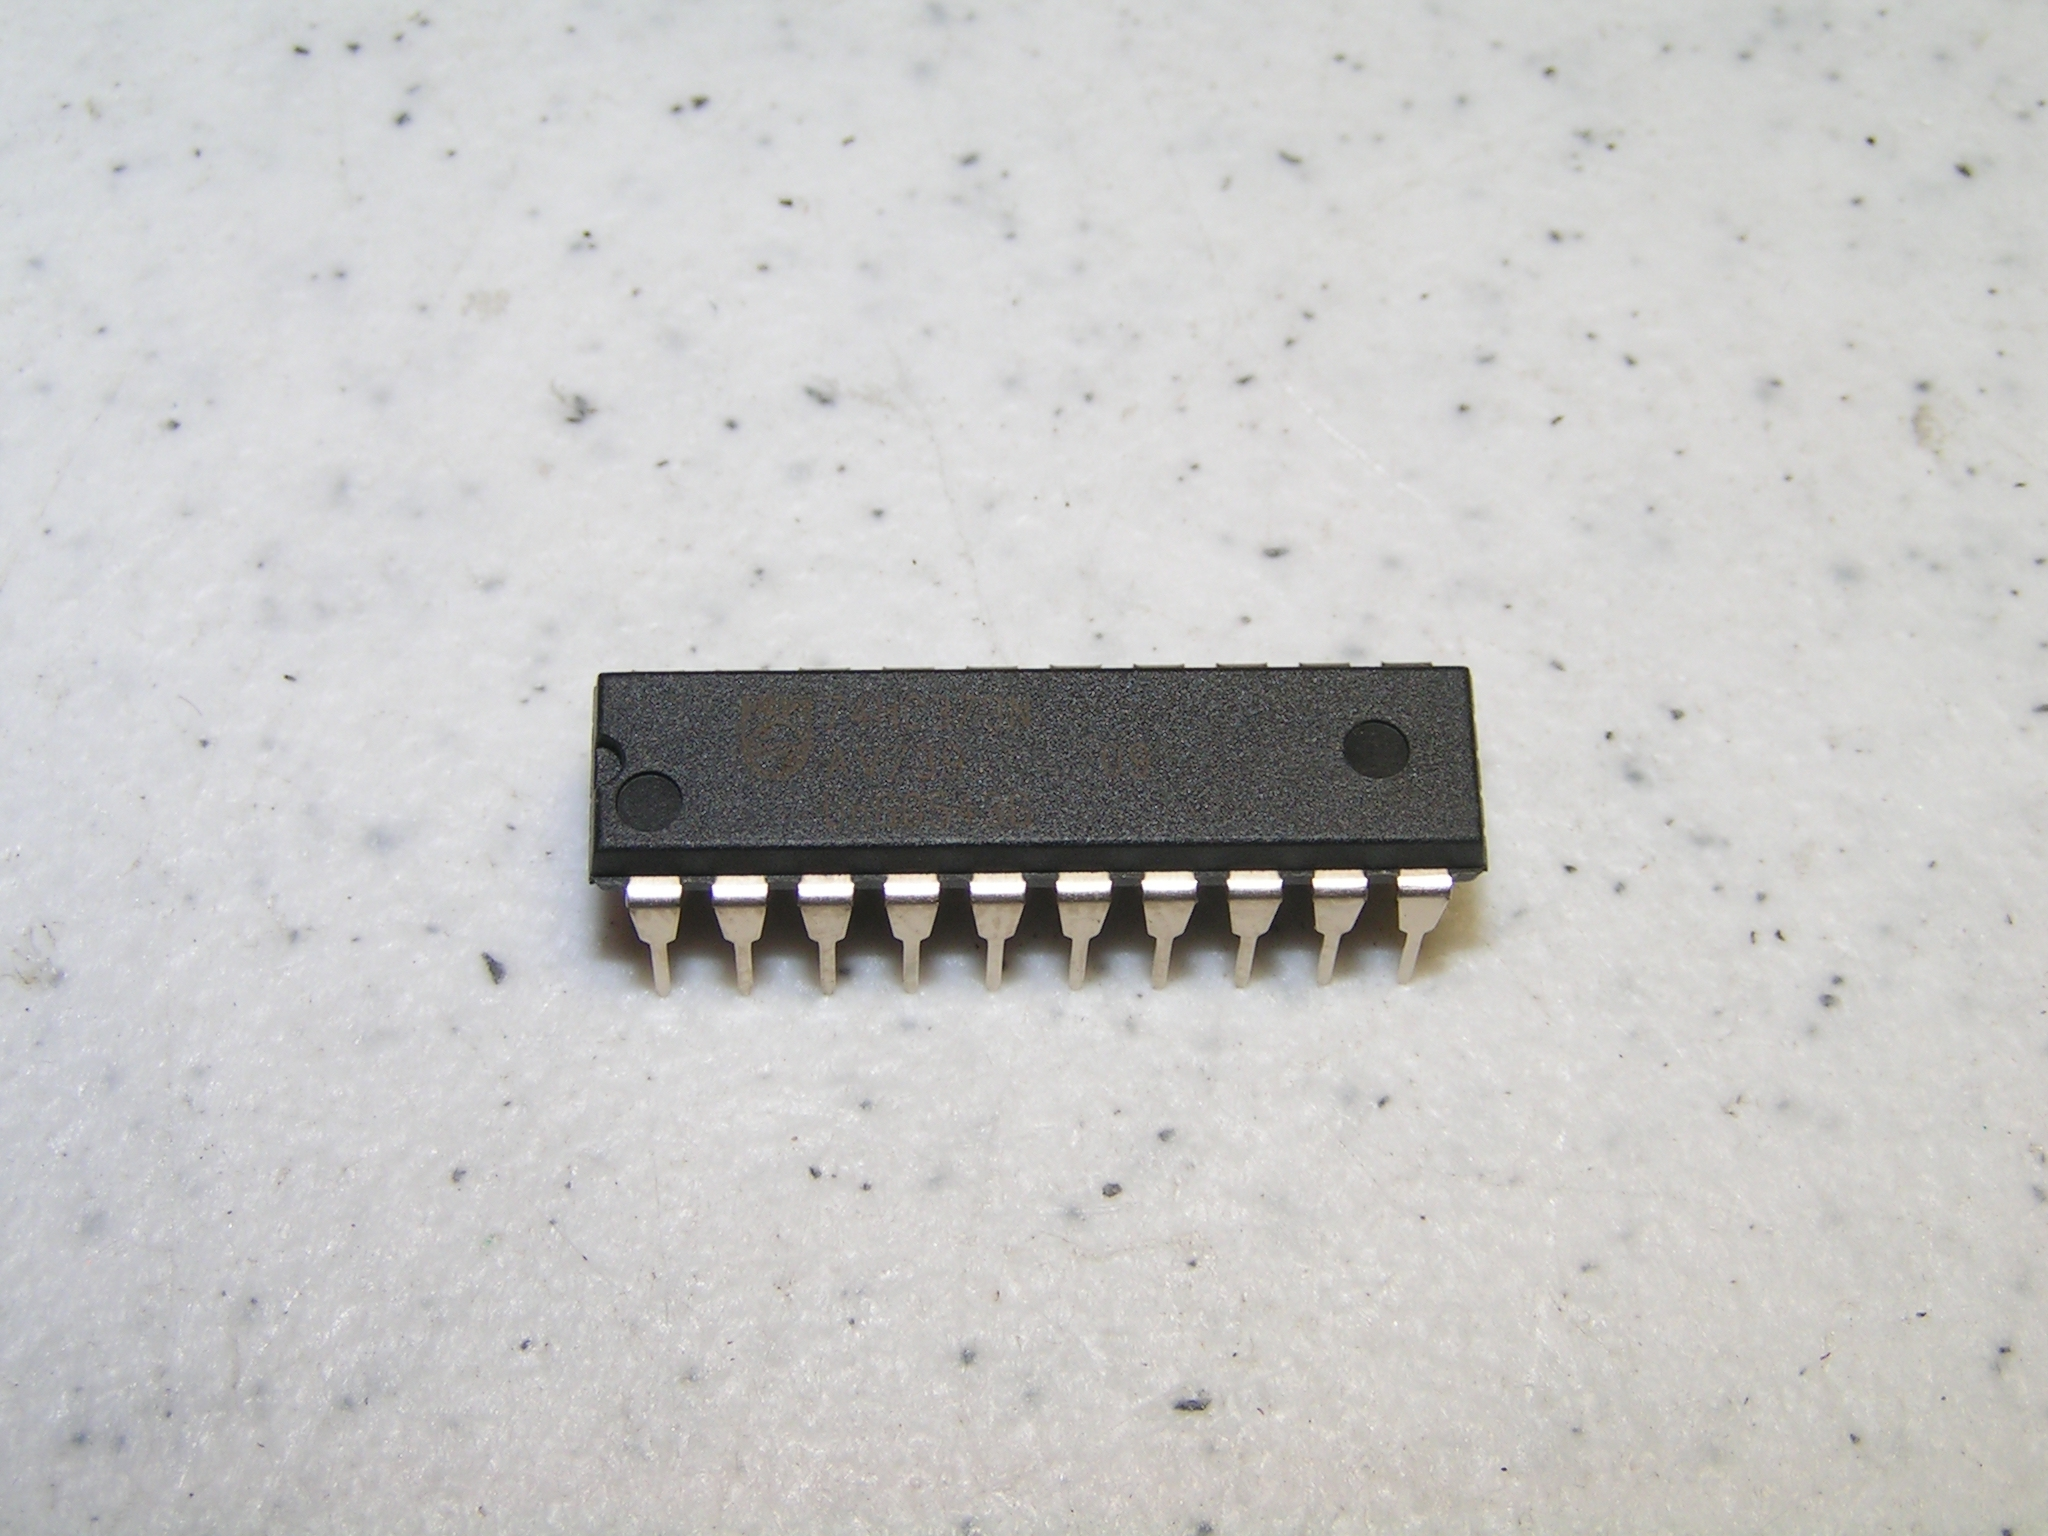 74HC373N Latching Chip